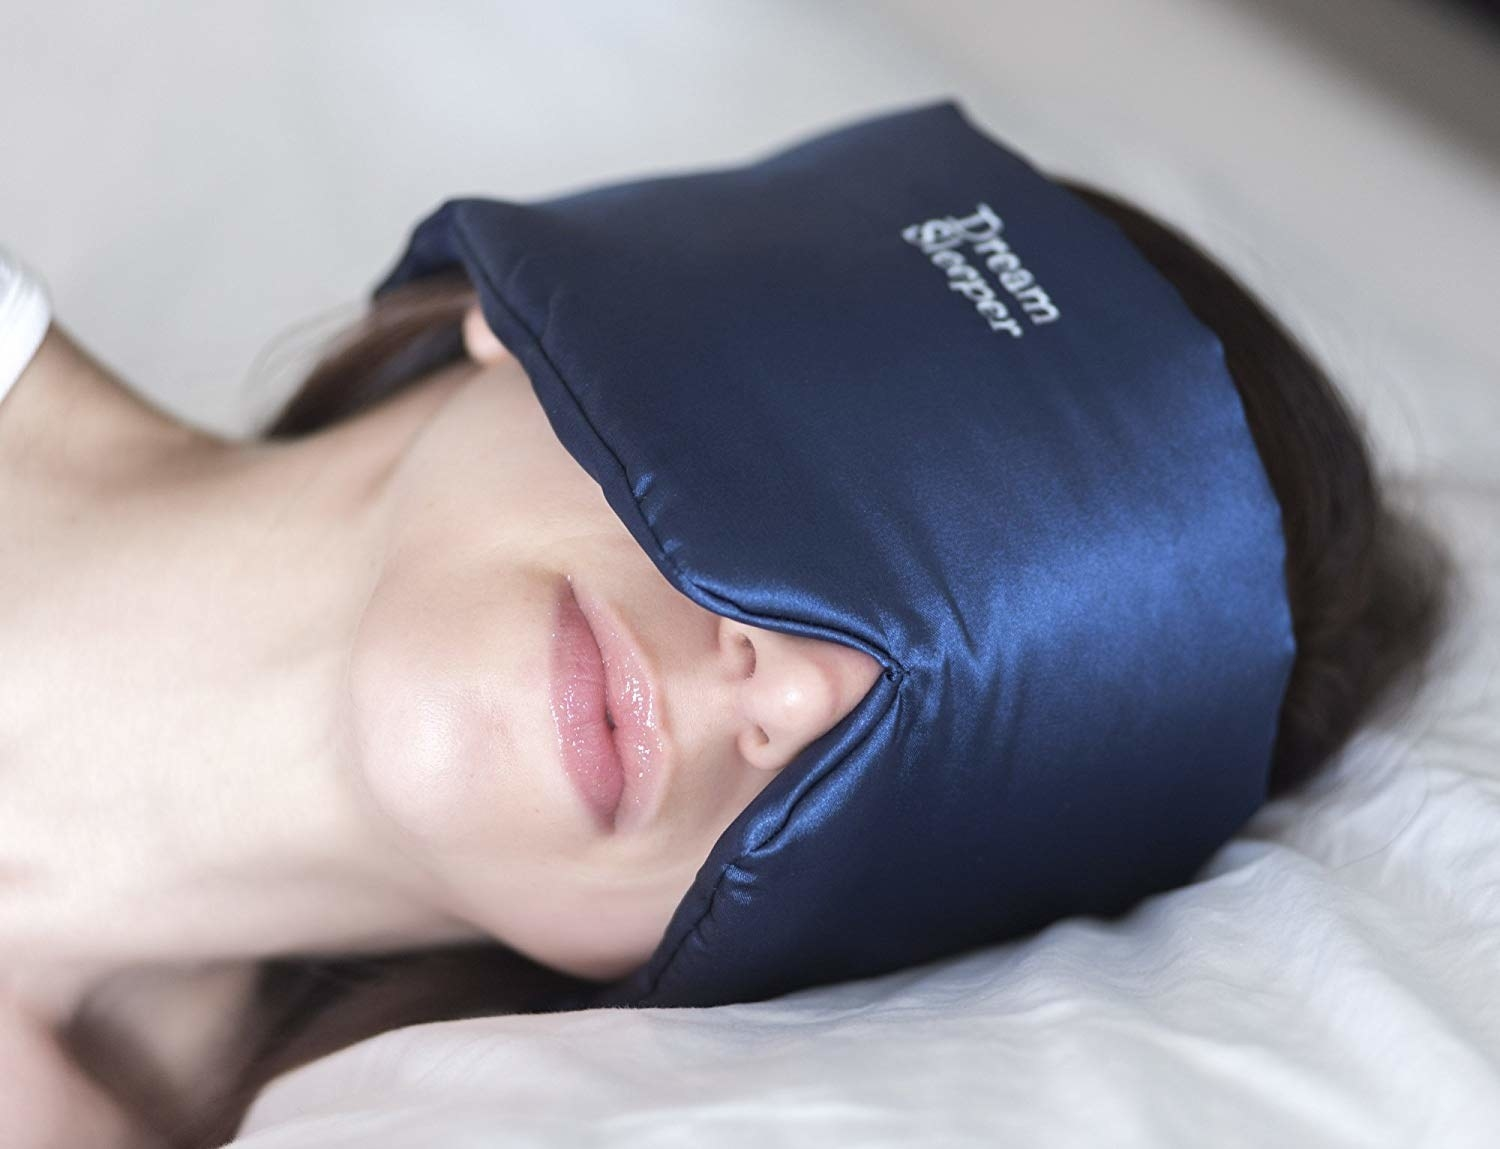 A person sleeping with the mask on their face